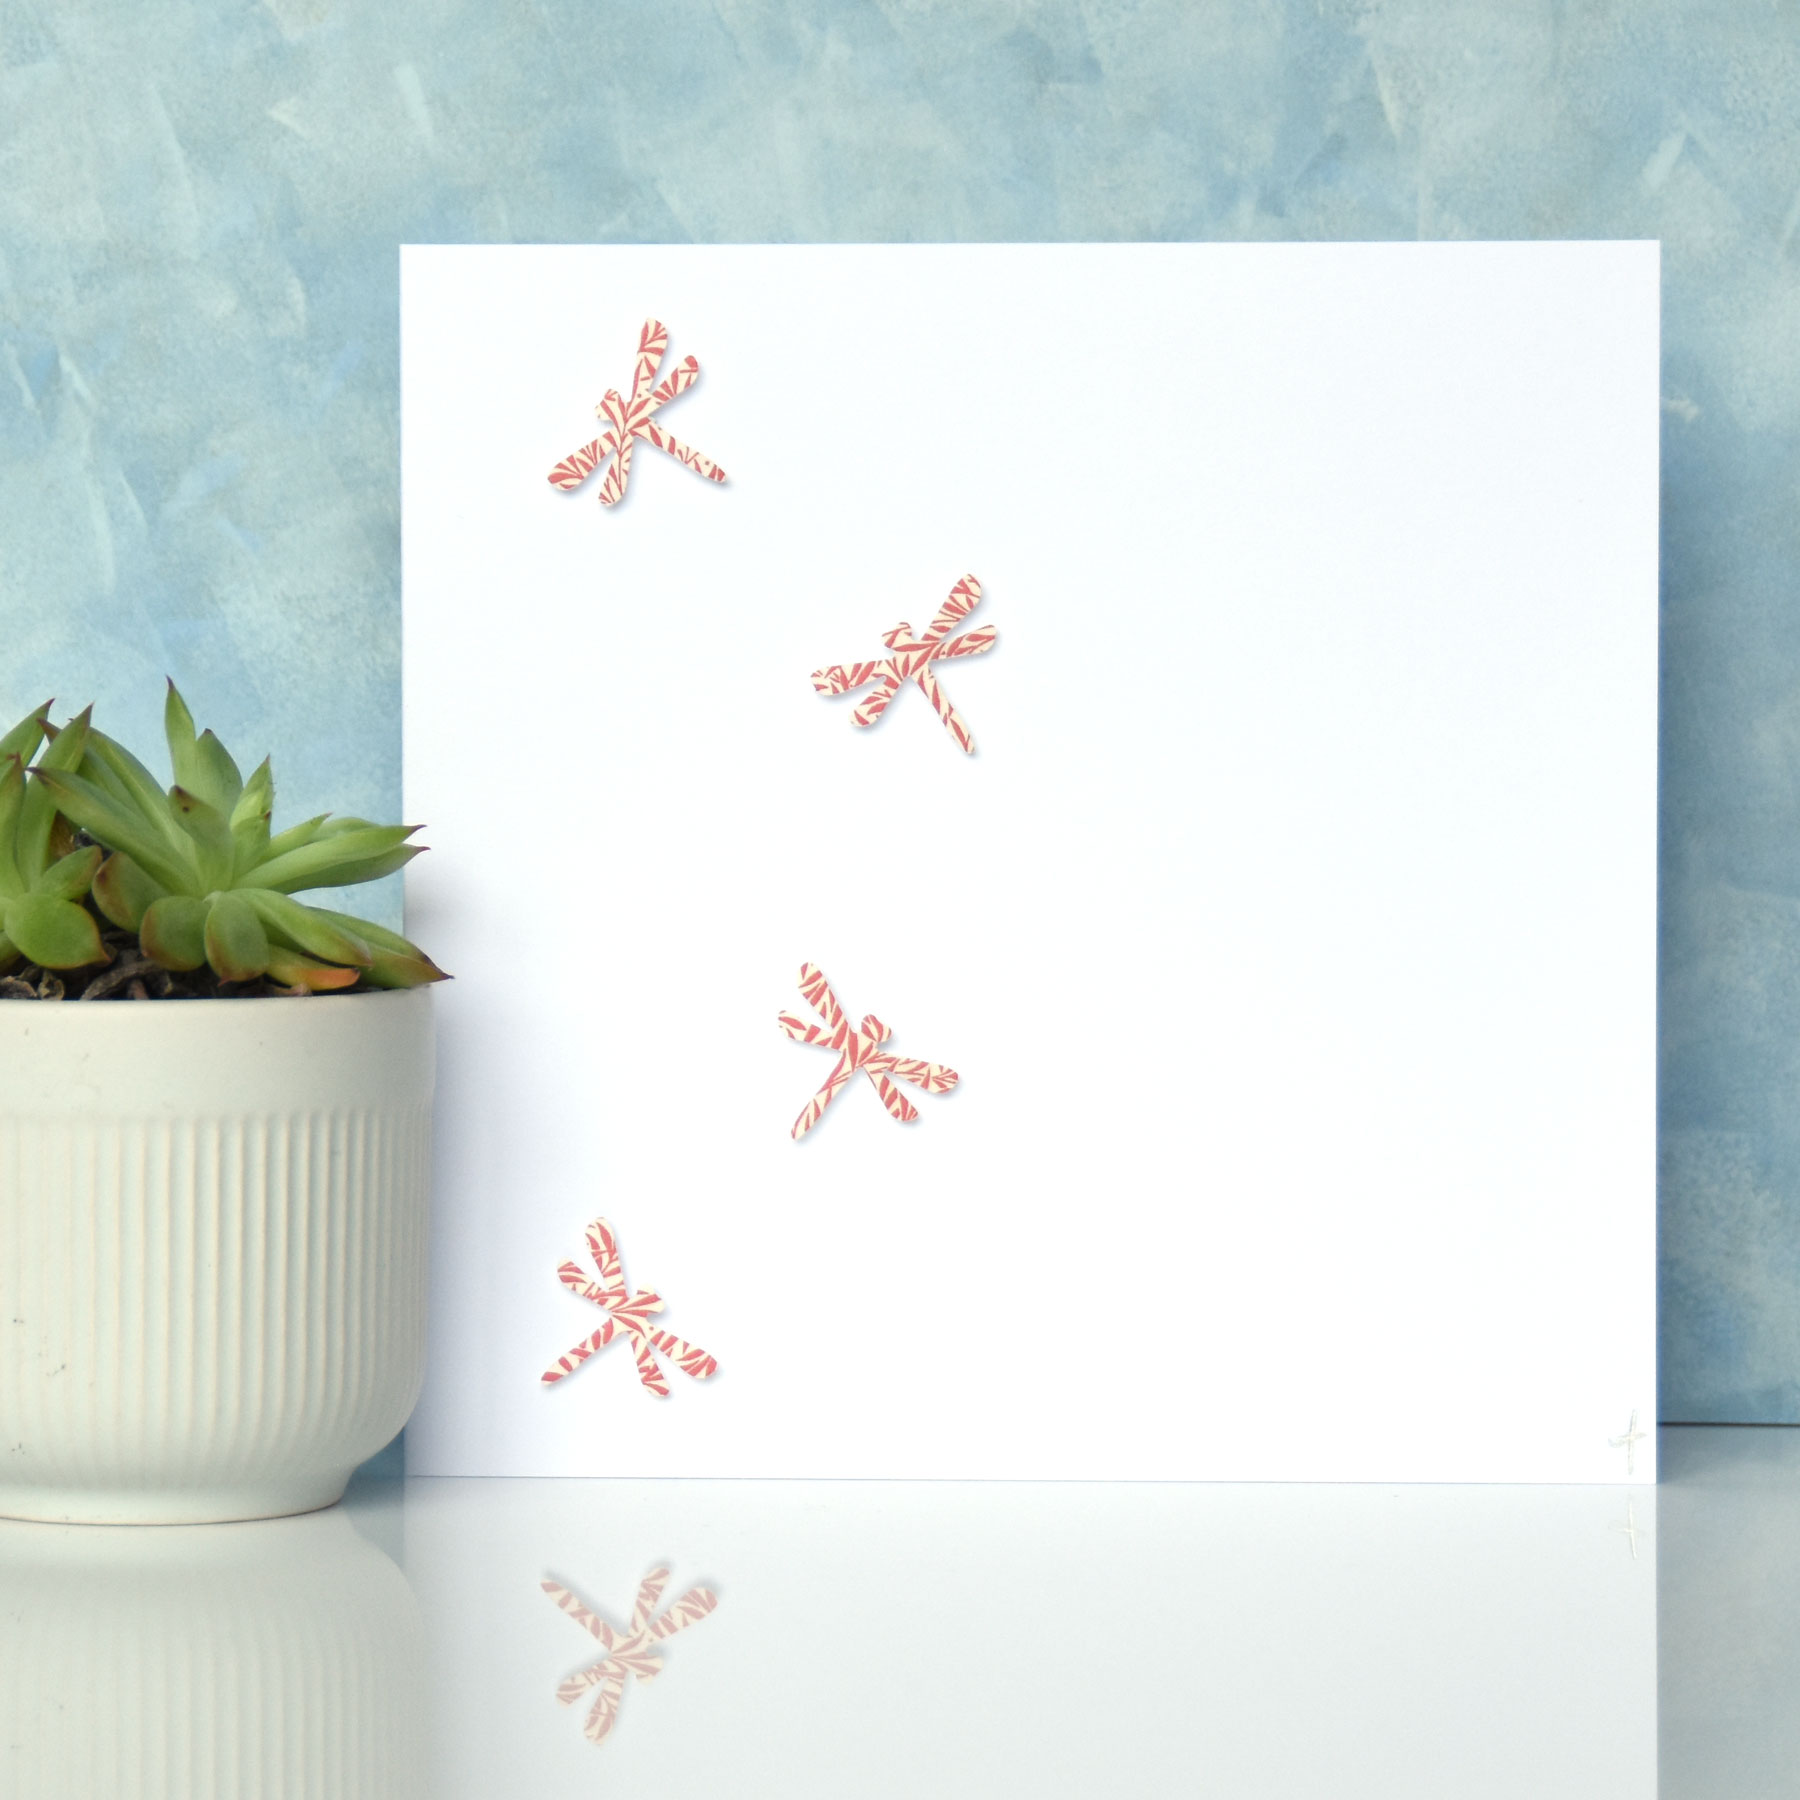 - Handmade using high quality cardstock, each card measure approx. 6